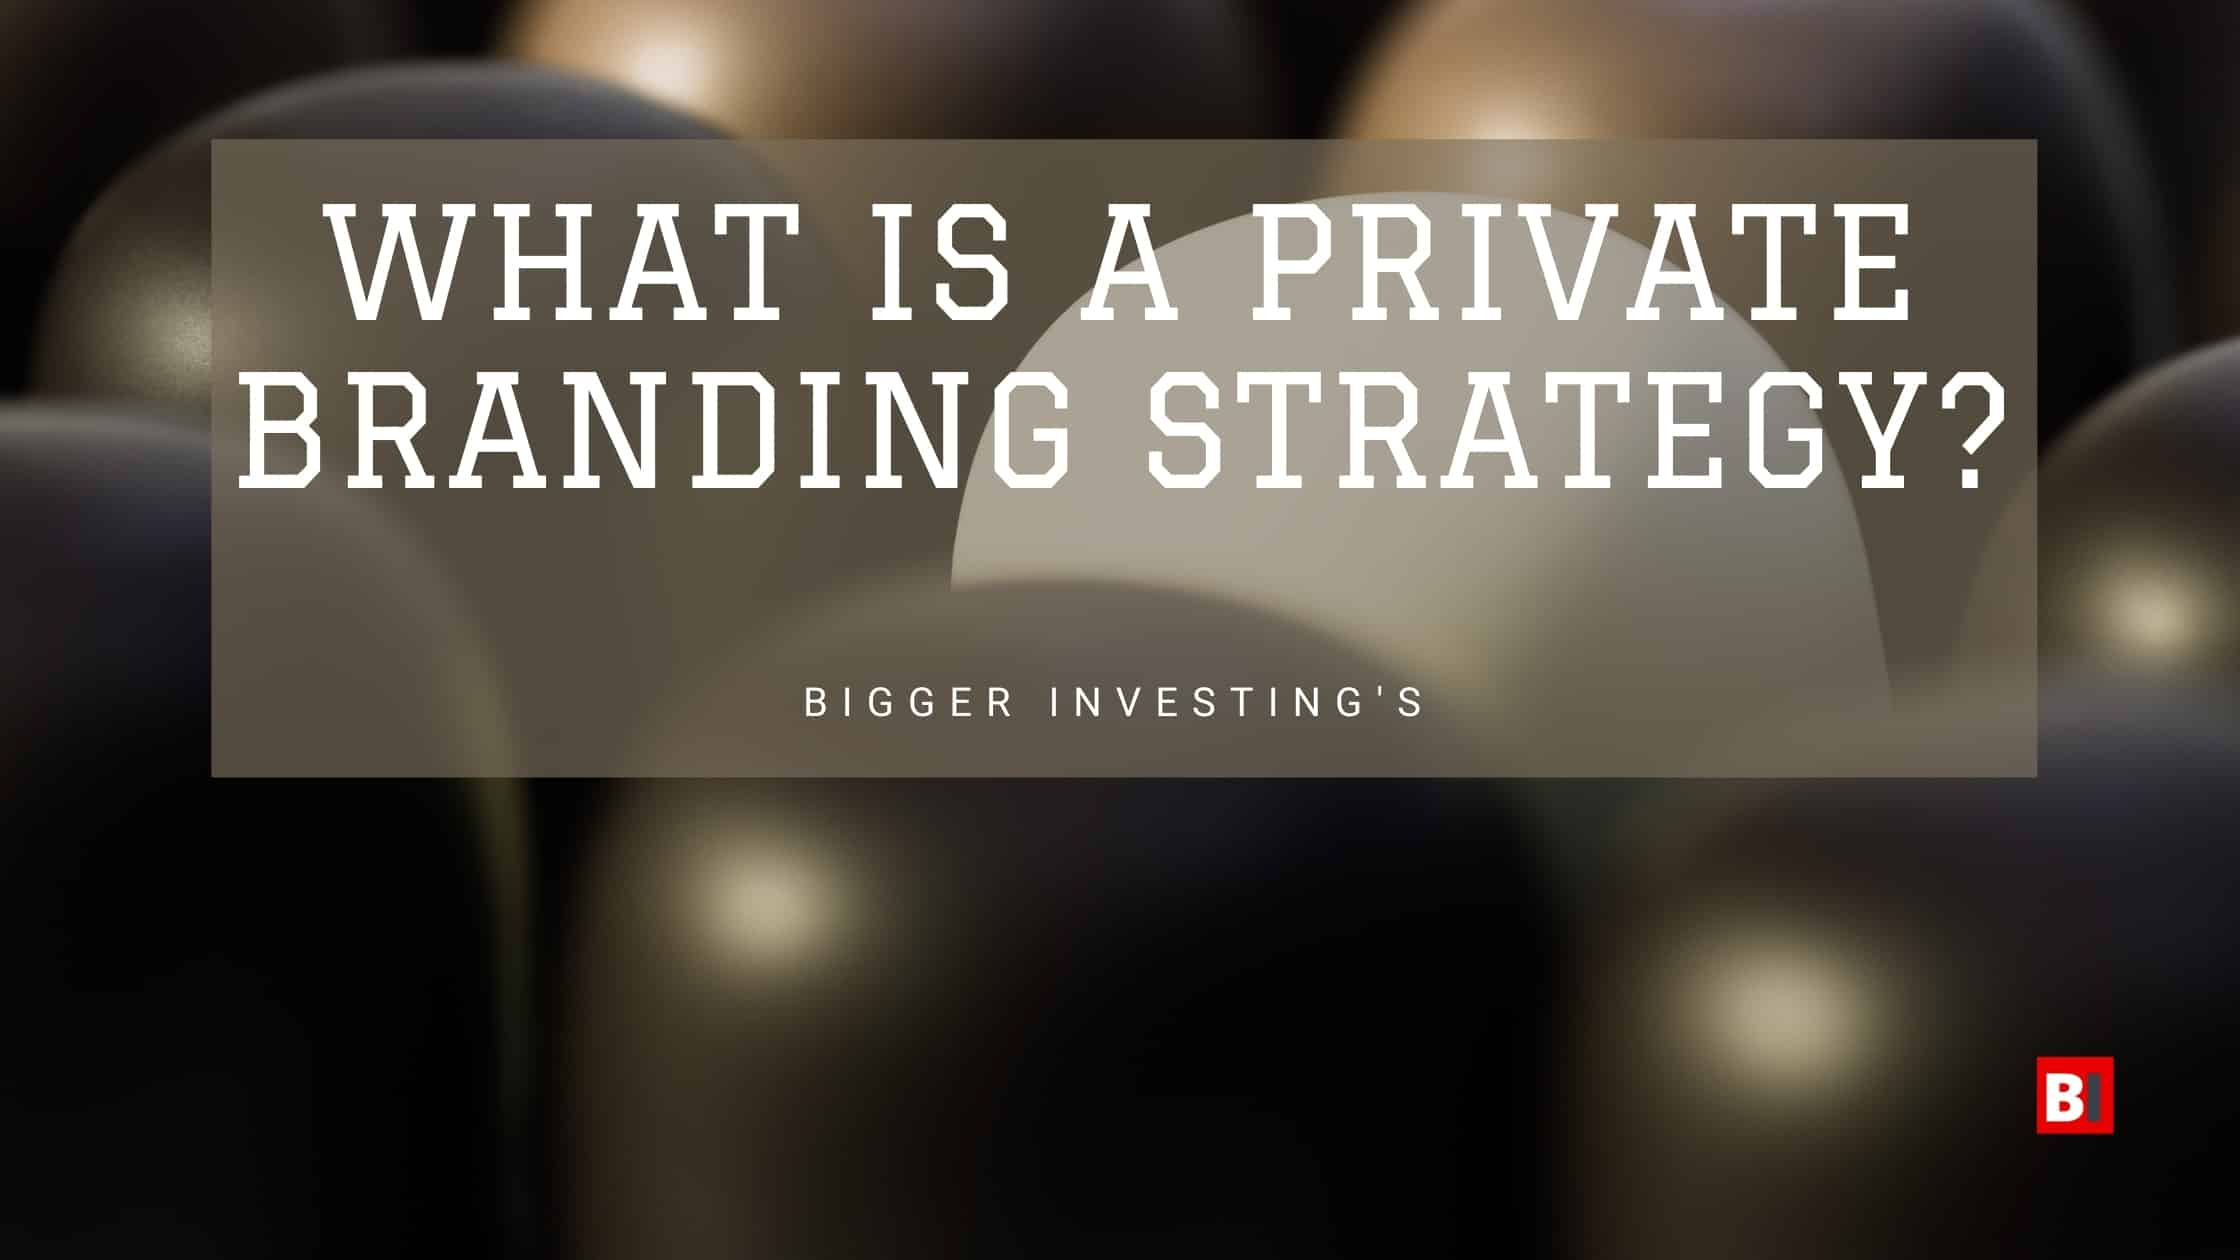 What is a Private Branding Strategy?